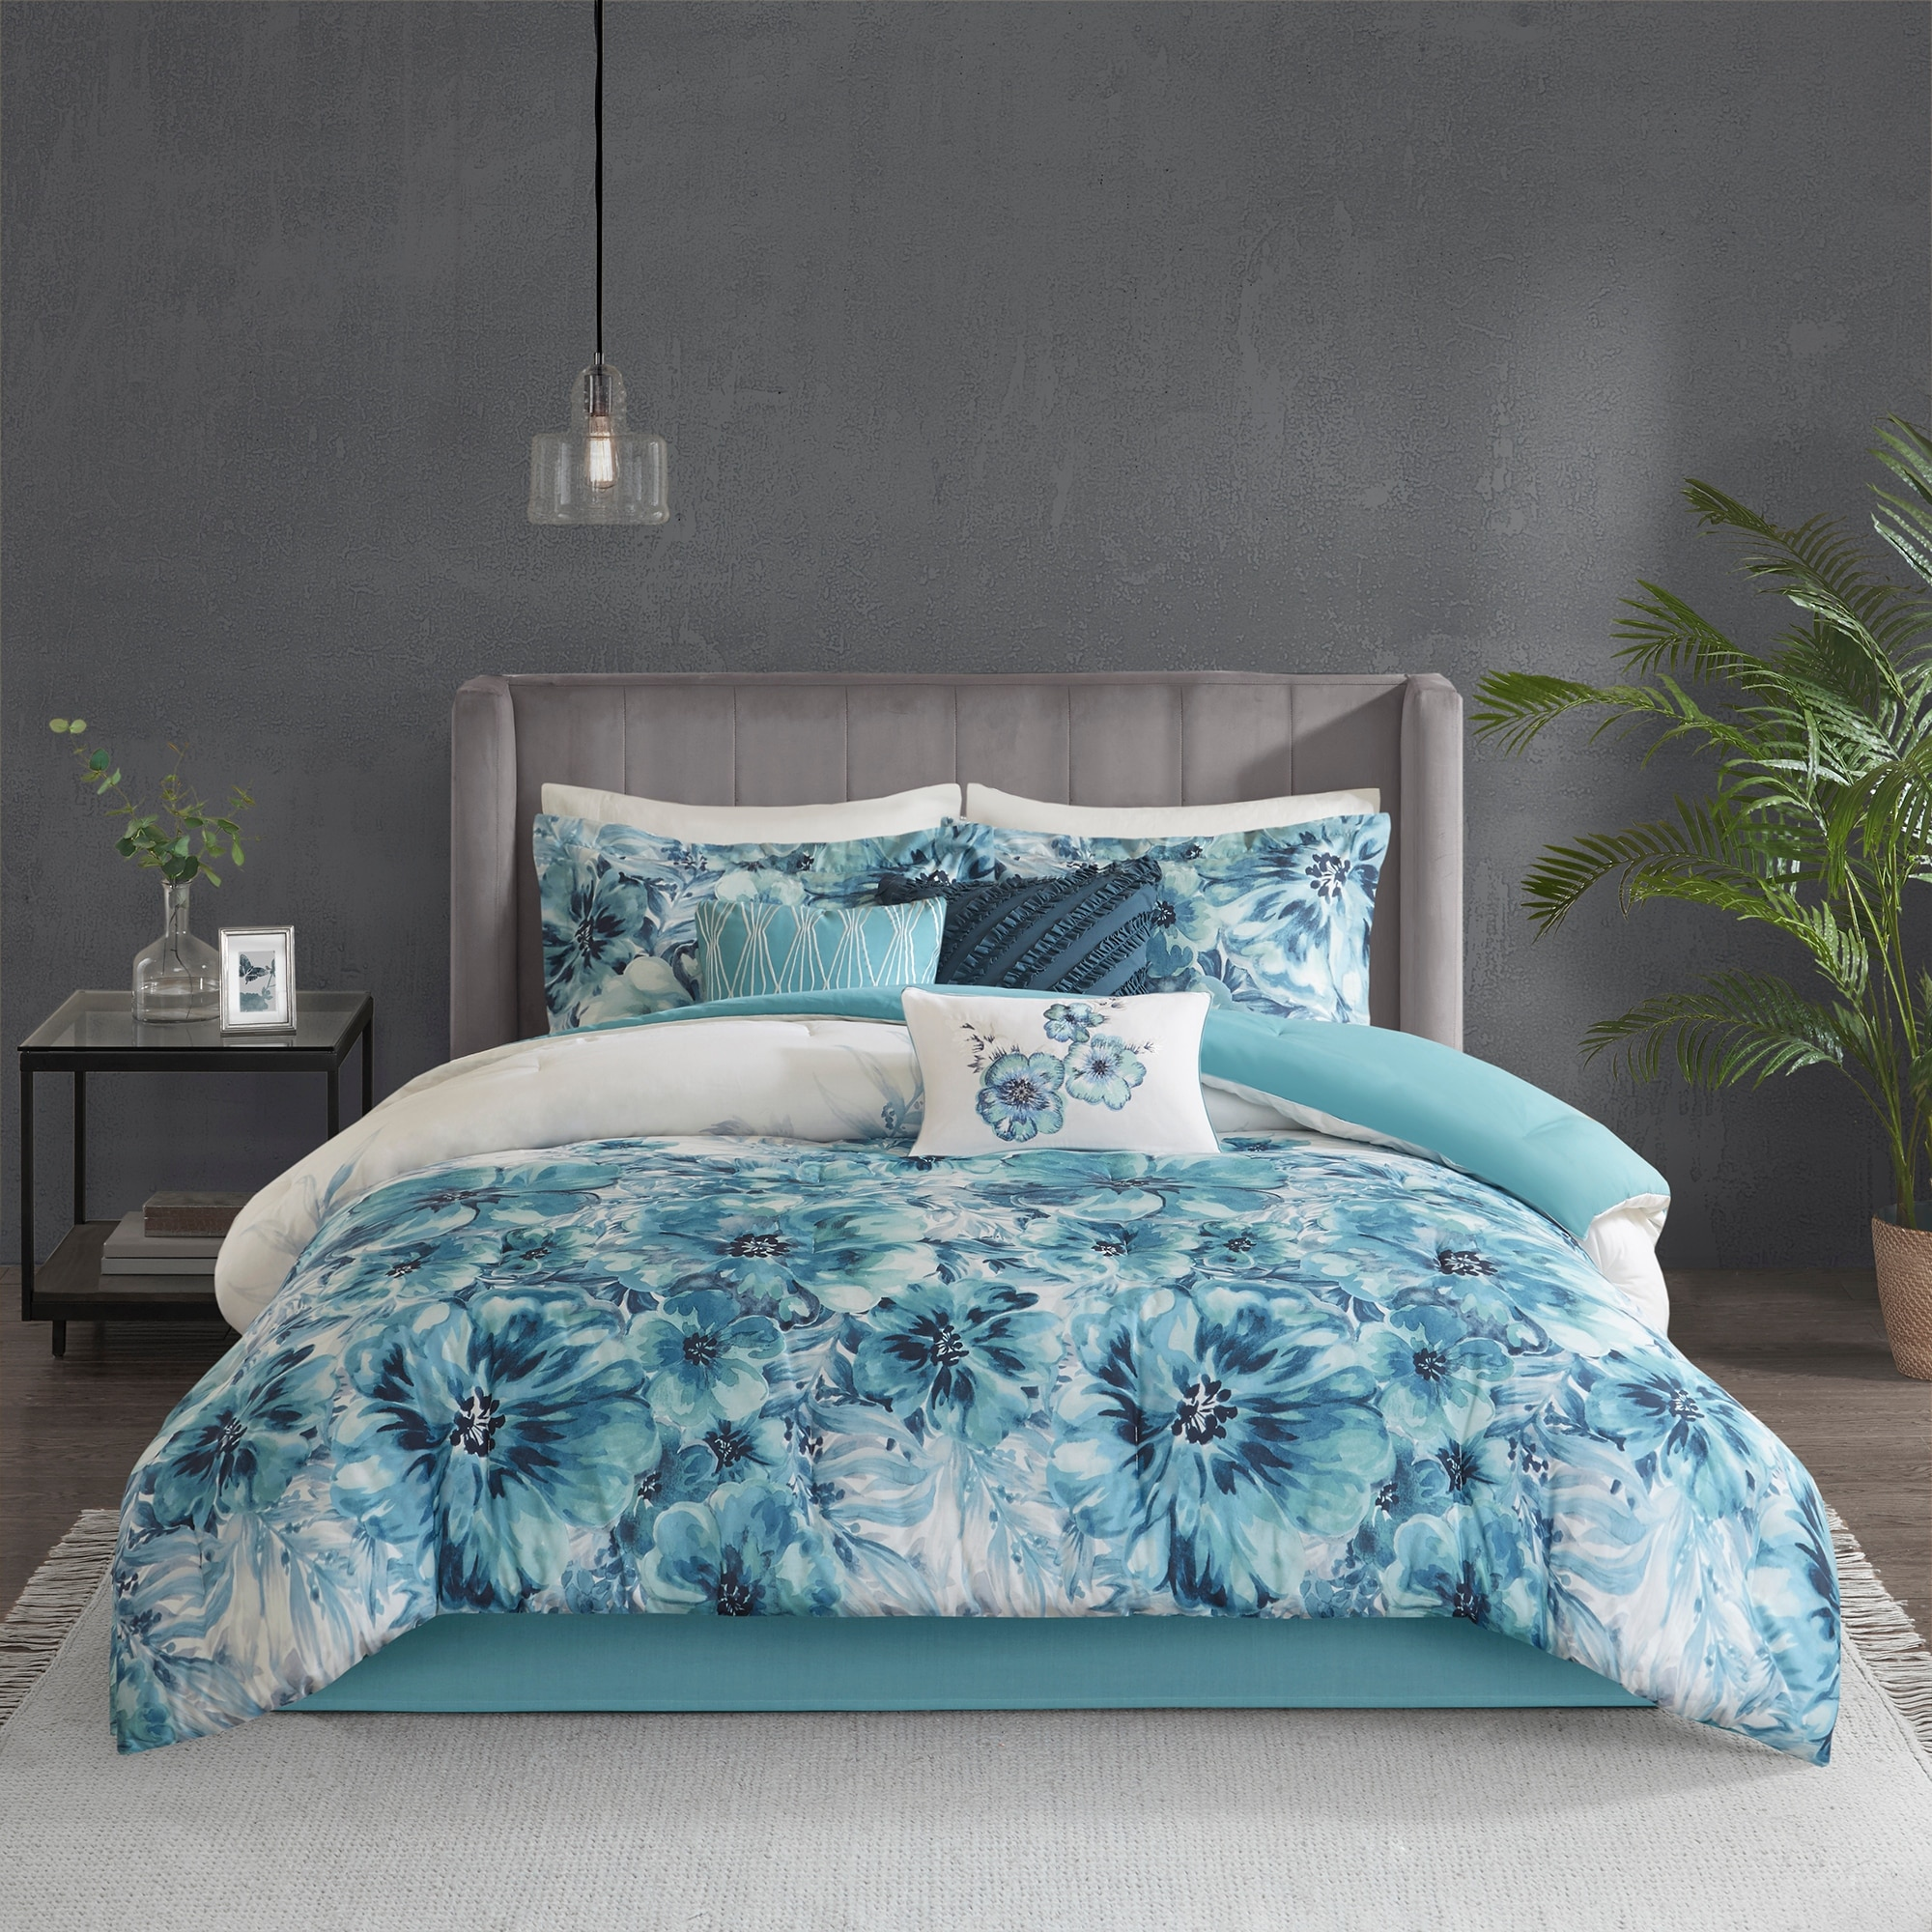 Madison Park Adella Teal 7 Piece Cotton Printed Comforter Set On Sale Overstock 21267089